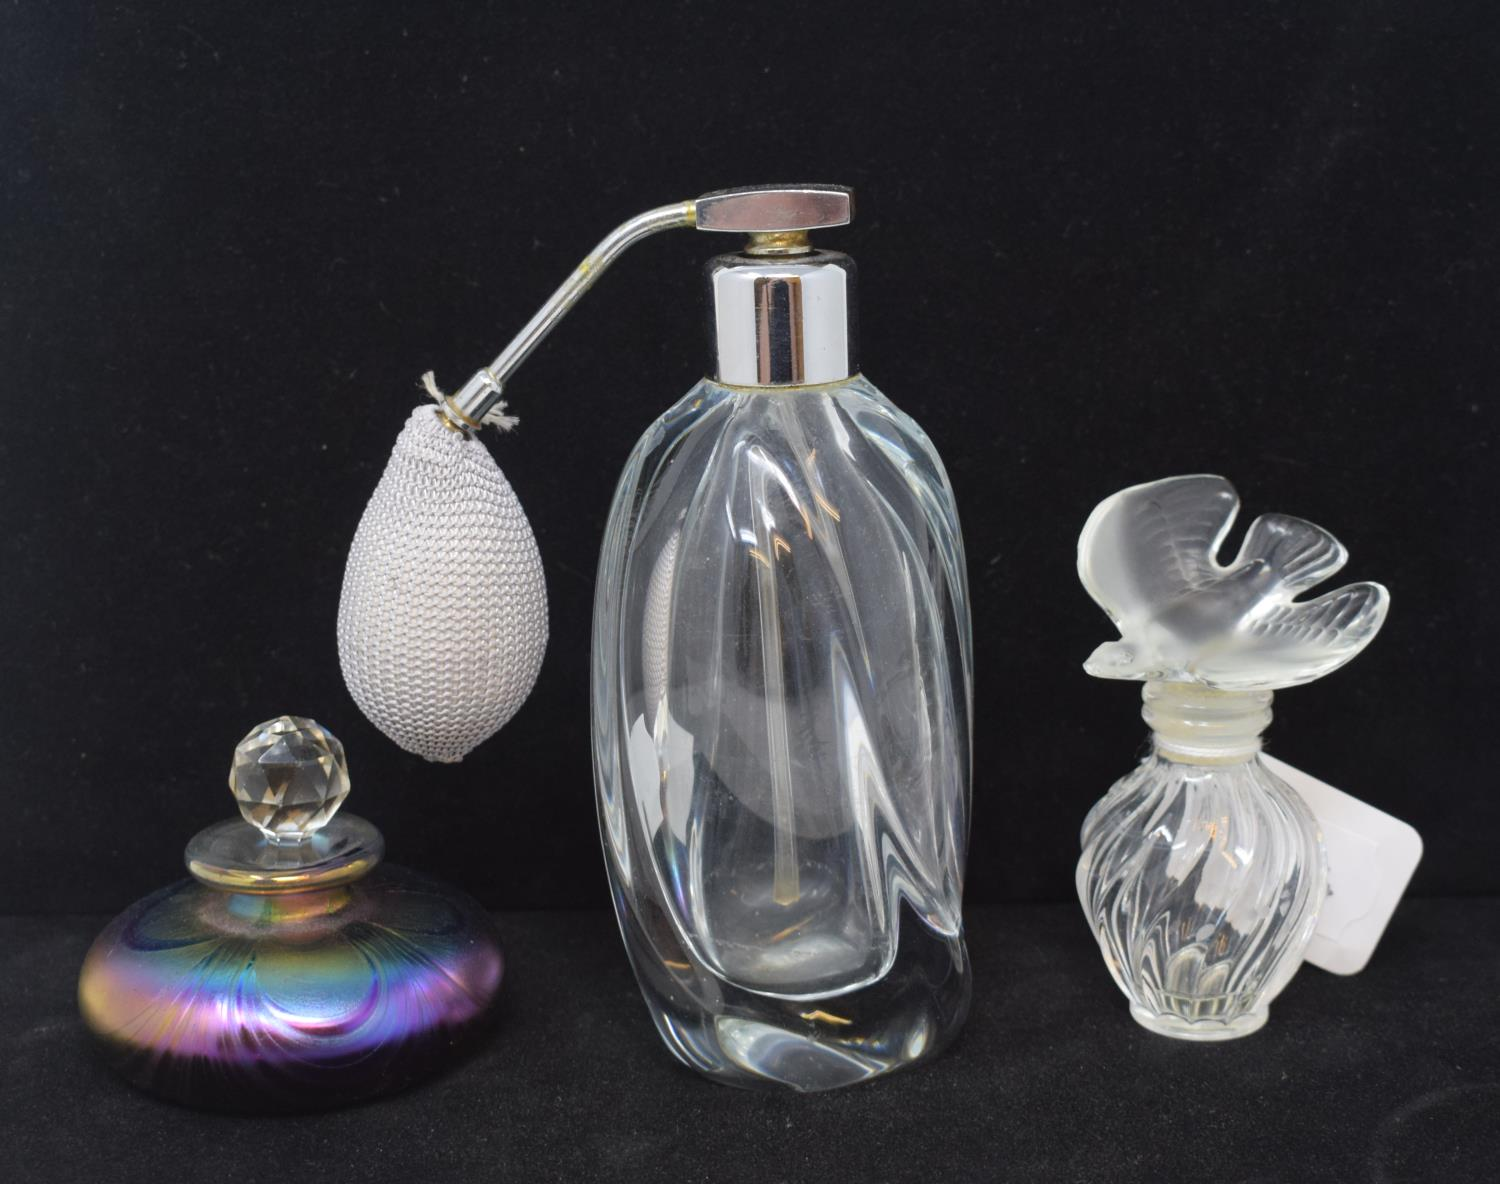 Lot 60 - A Lalique frosted and clear glass scent bottle, the stopper in the form of a dove, 10 cm high, and